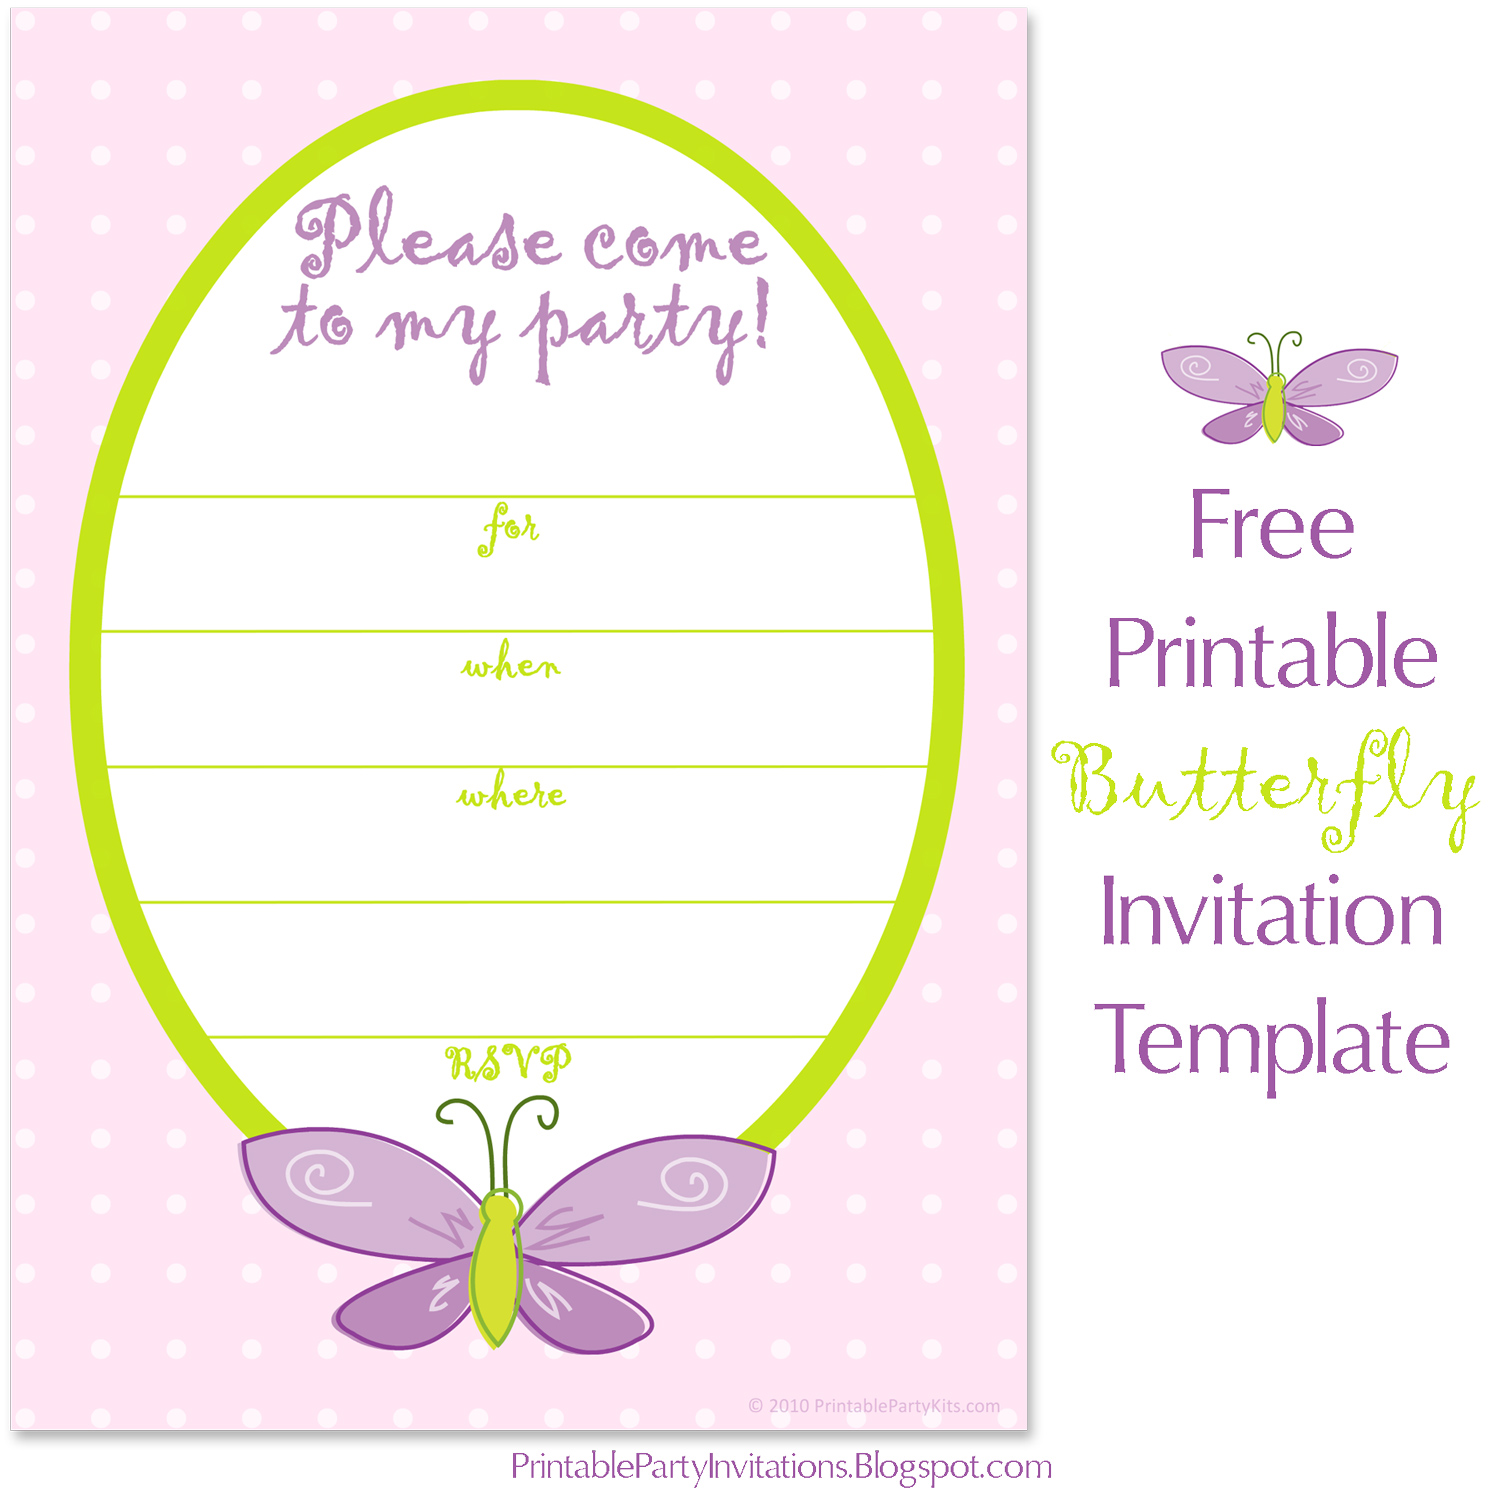 picture about Free Printable Girl Birthday Invitations identified as Cant come across subsution for tag [article.system]--\u003e No cost Red